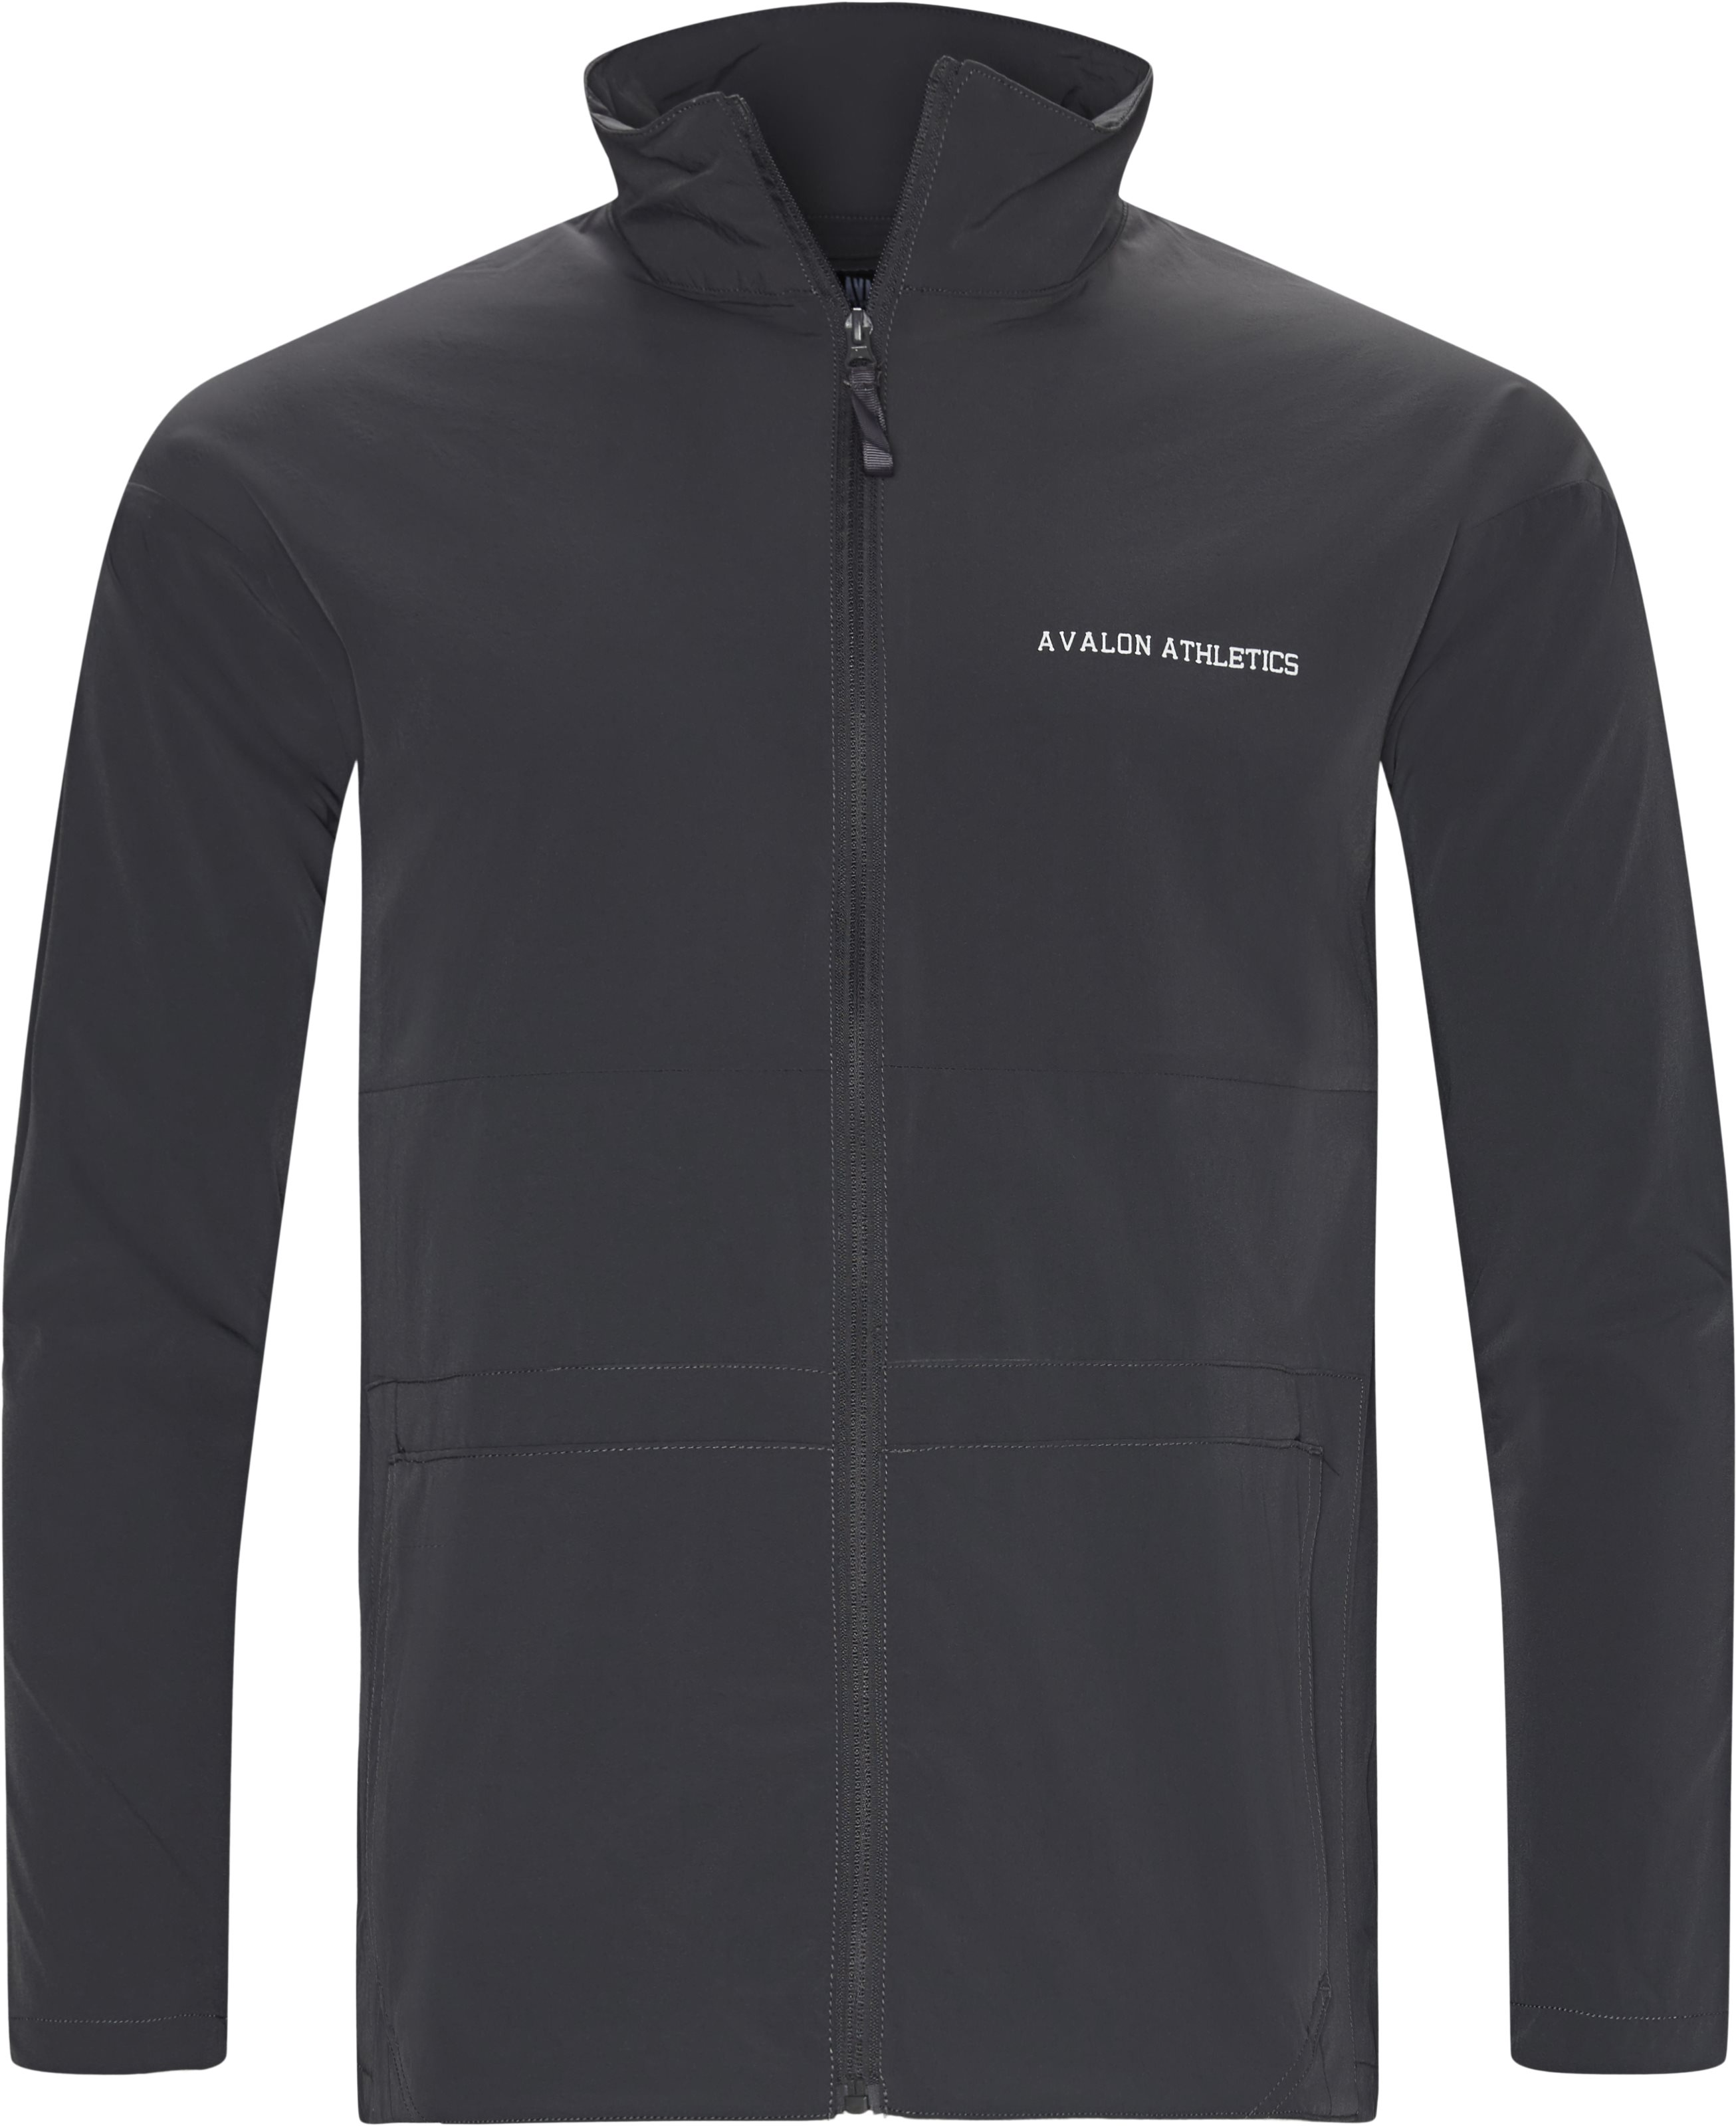 Phil Track Top - Jackets - Regular - Grey